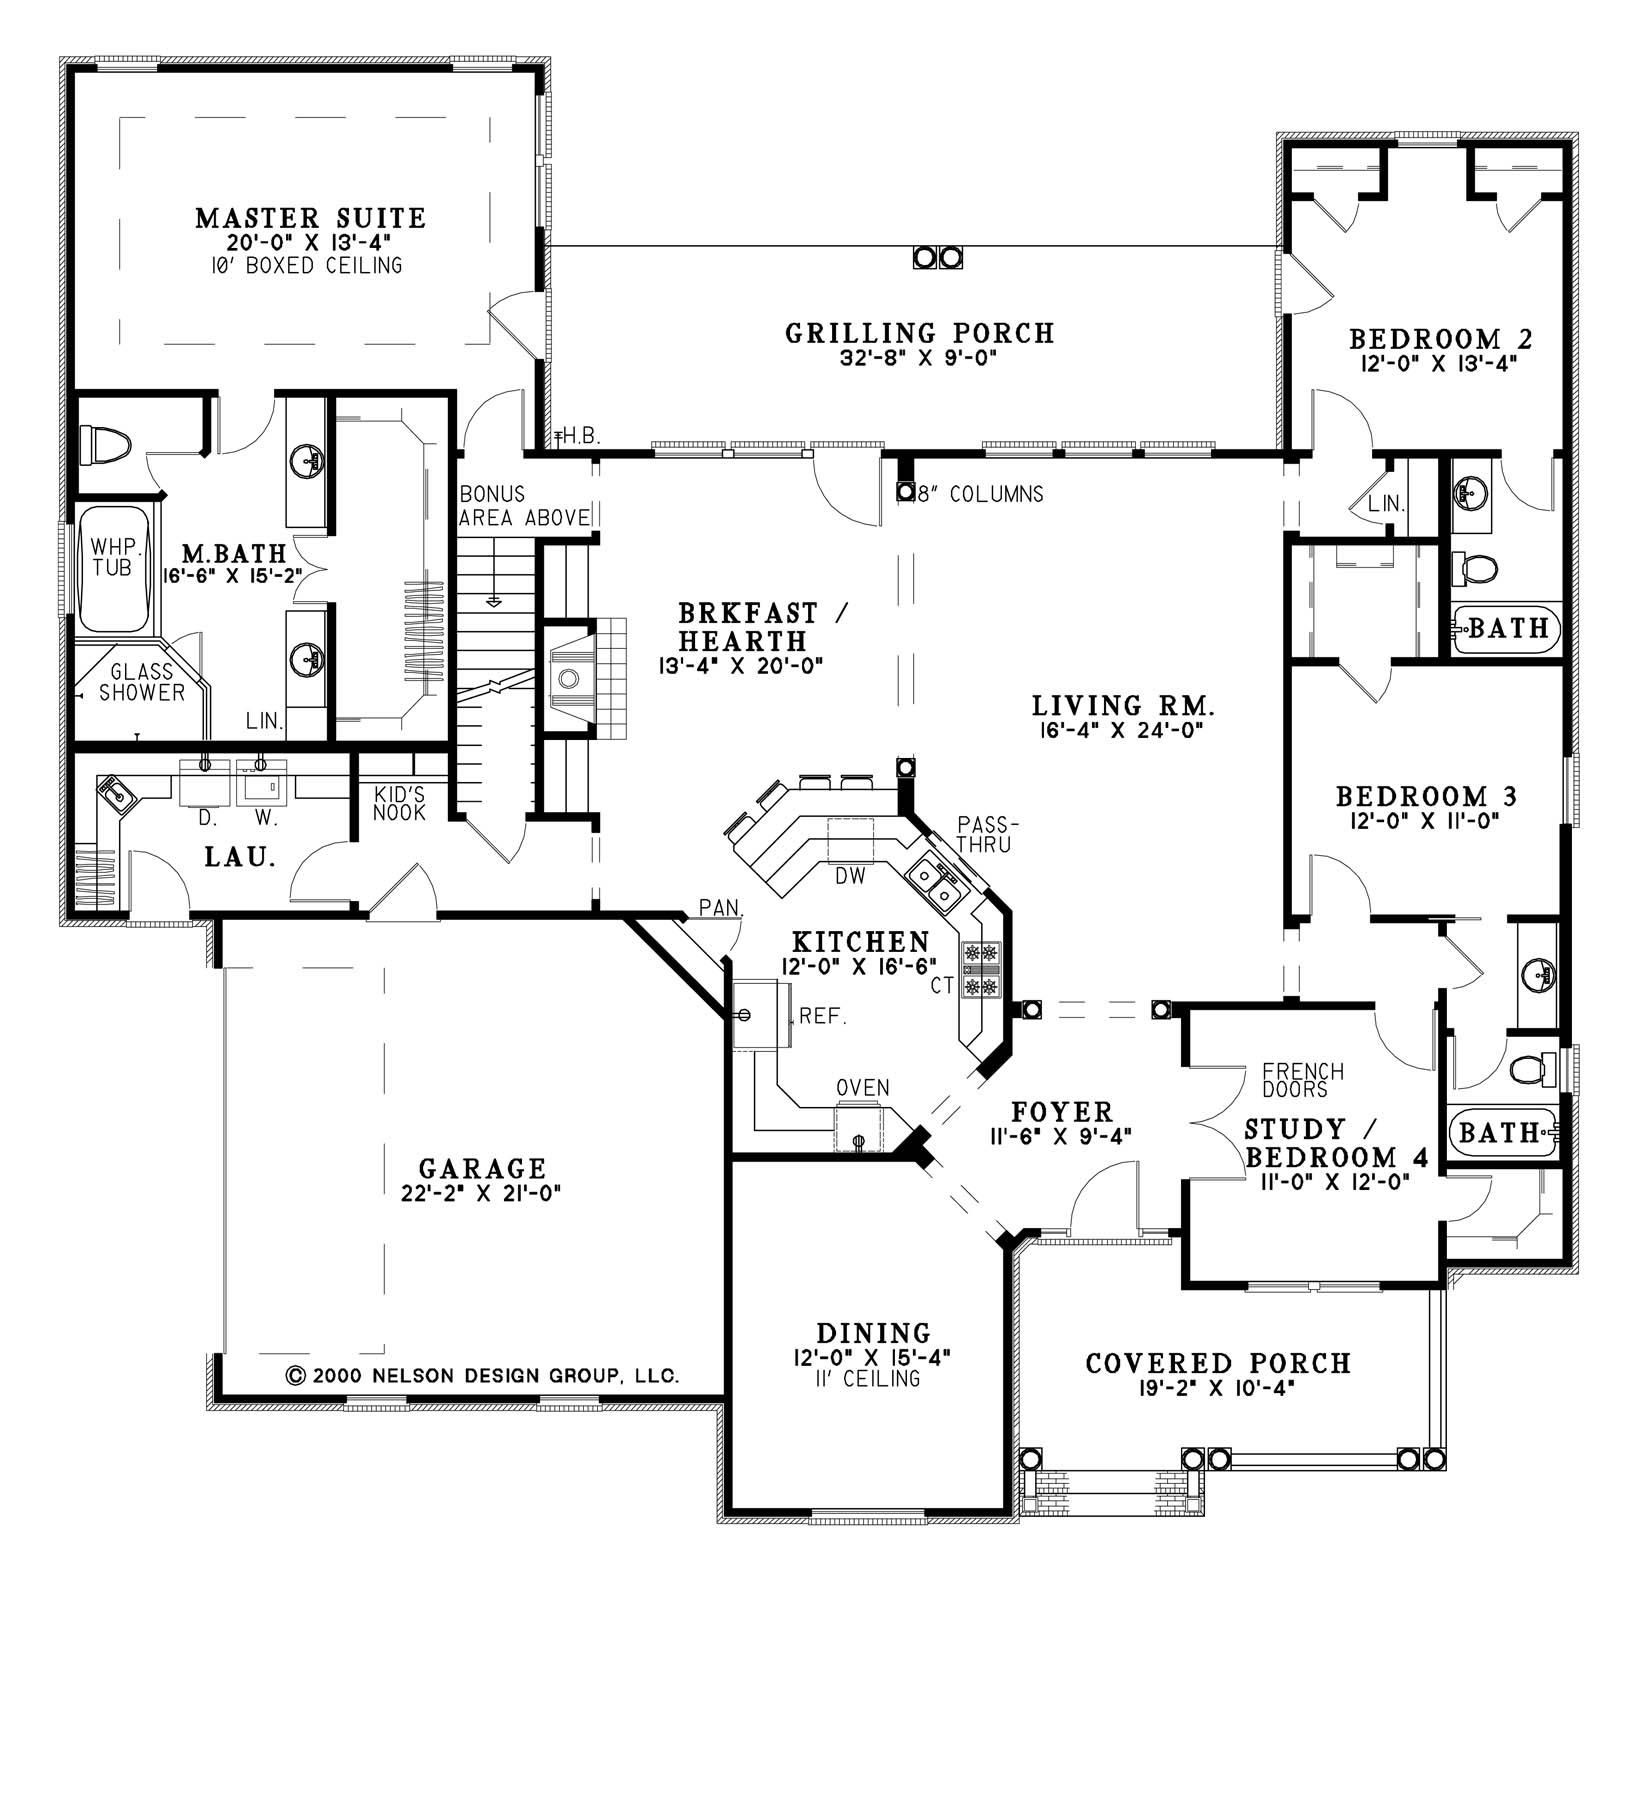 Southland Custom Homes Custom Home Builder In Georgia House Plans And More House Plans Country Style House Plans